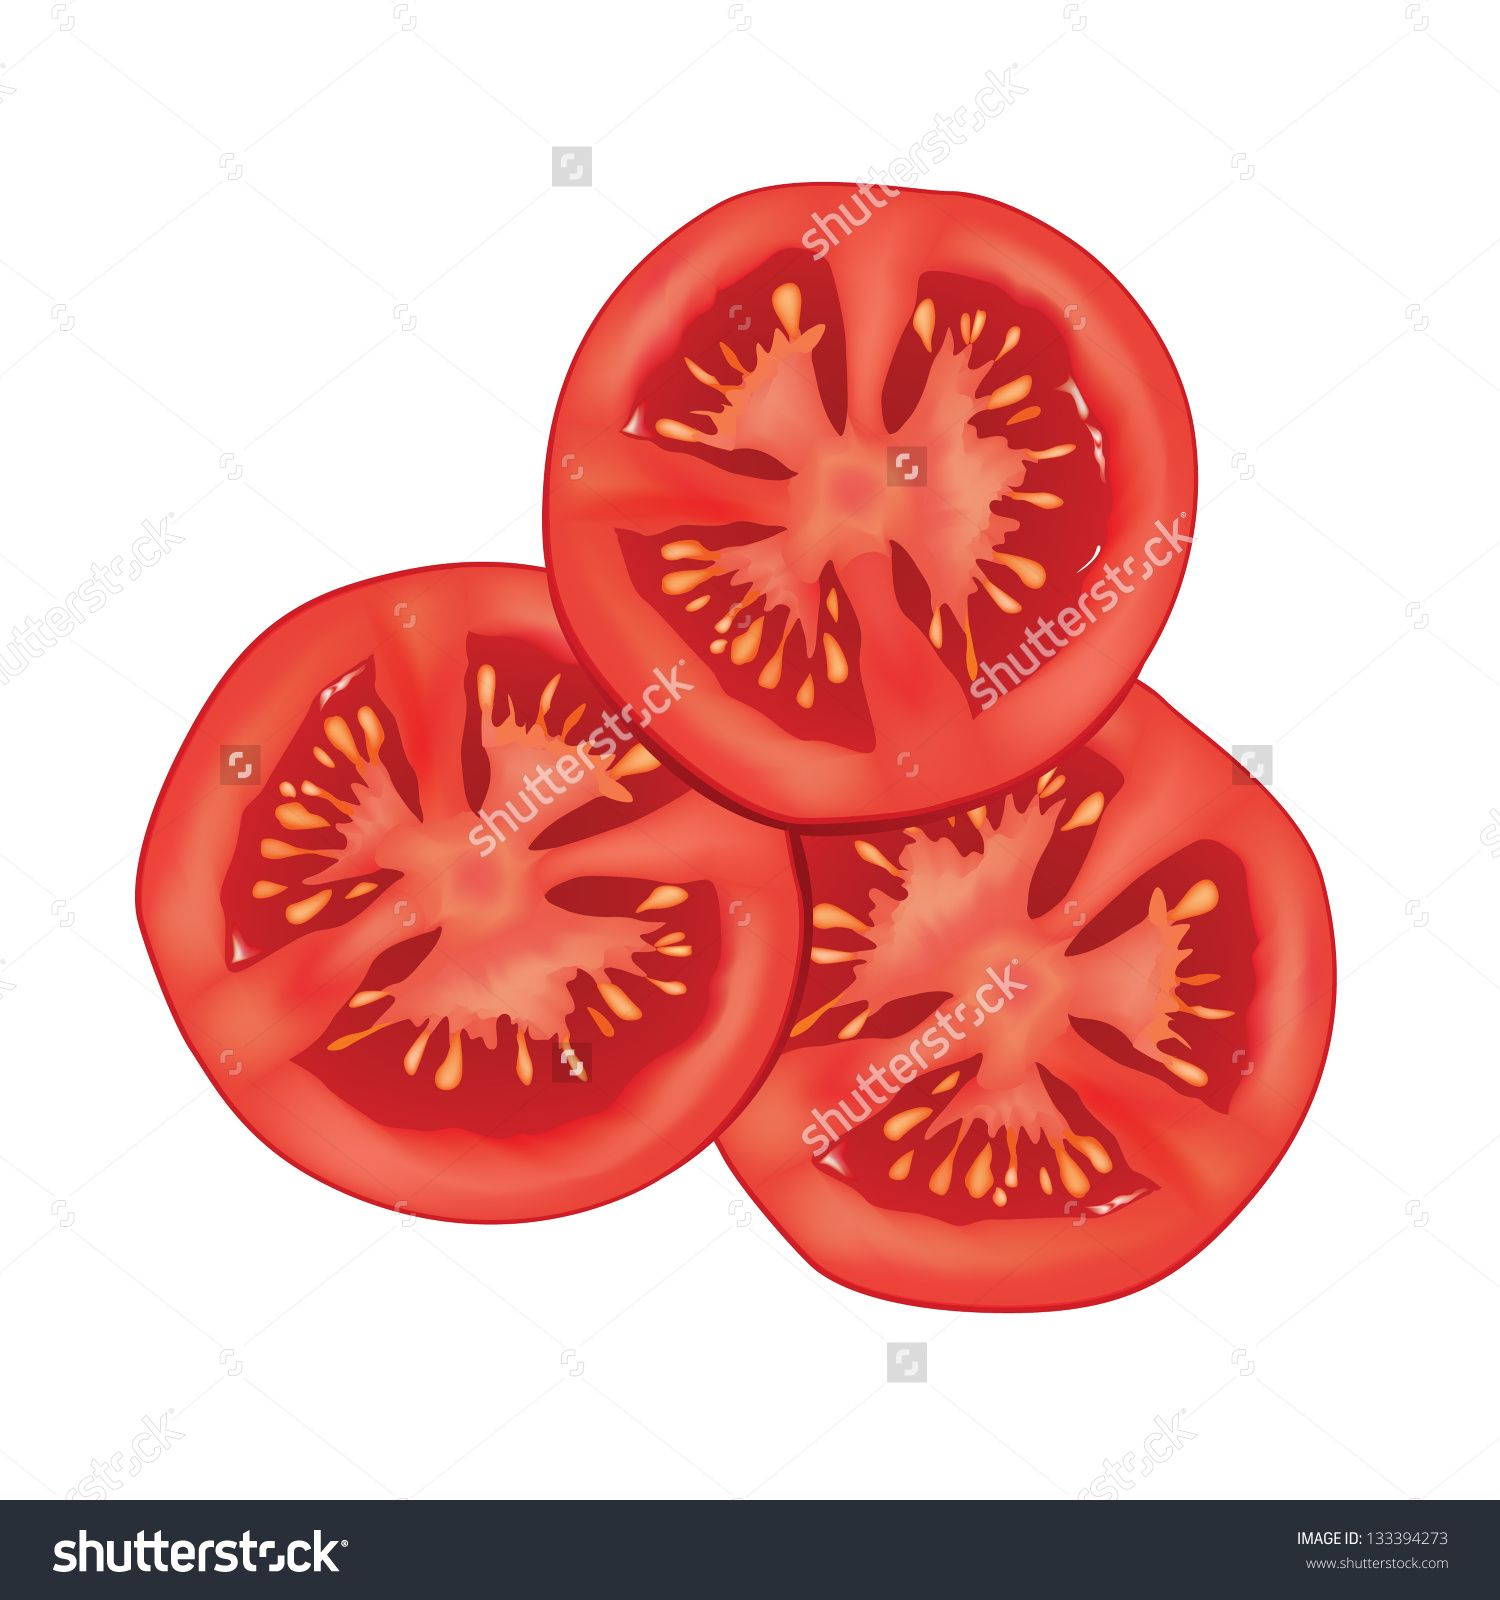 Tomatoes clipart sliced tomato. Isolated over white background